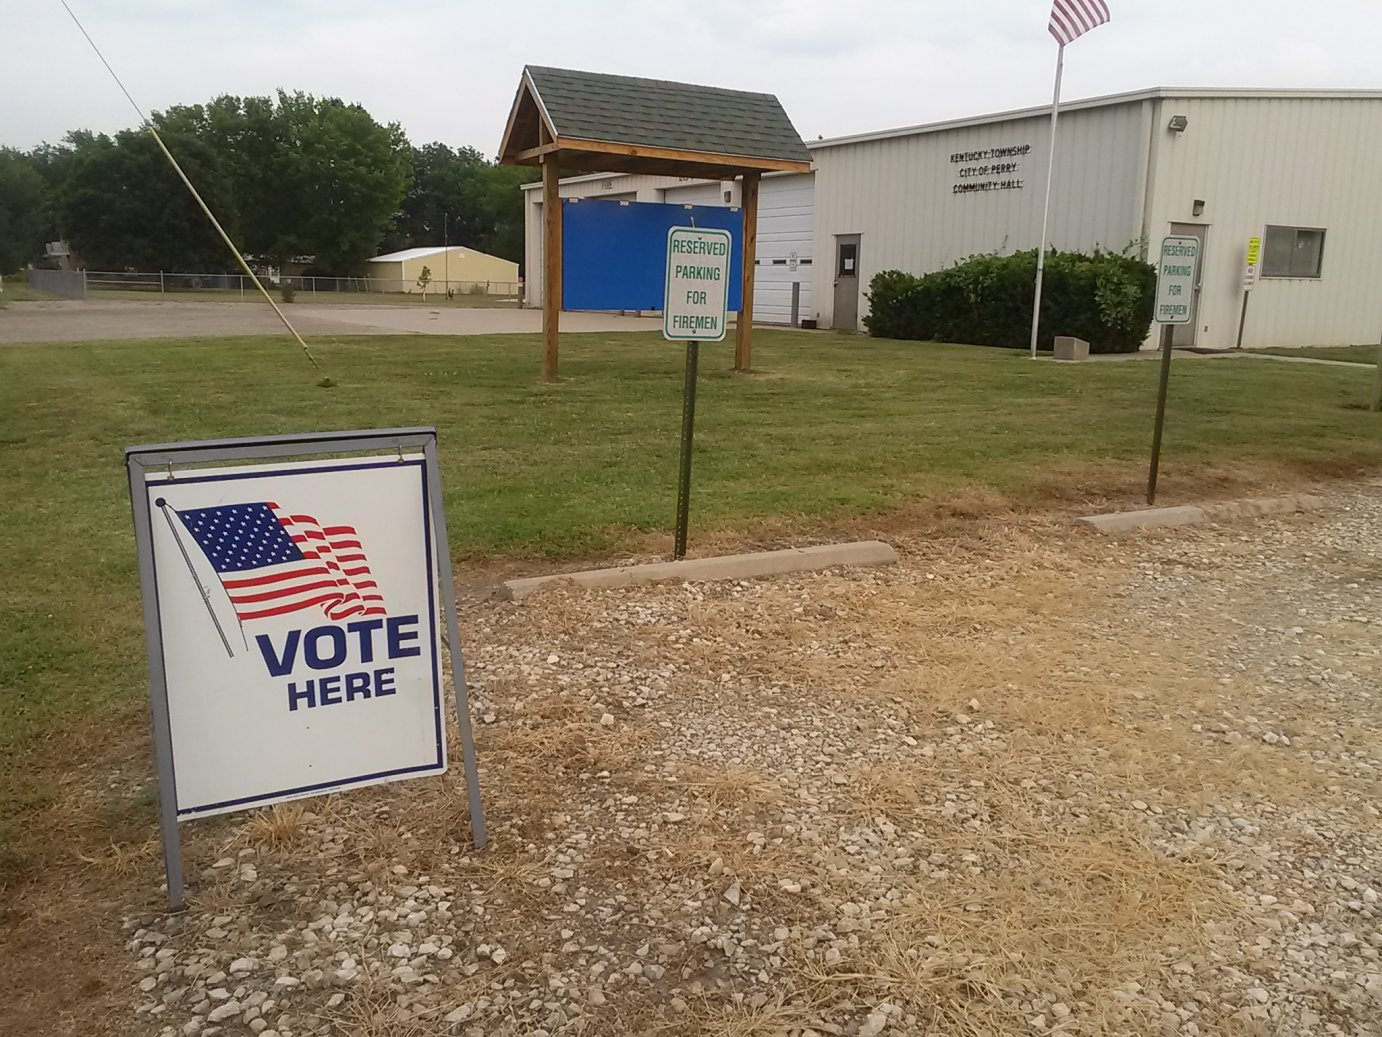 Polling site in Jefferson County, KS (Photo credit: Laura Lorson)